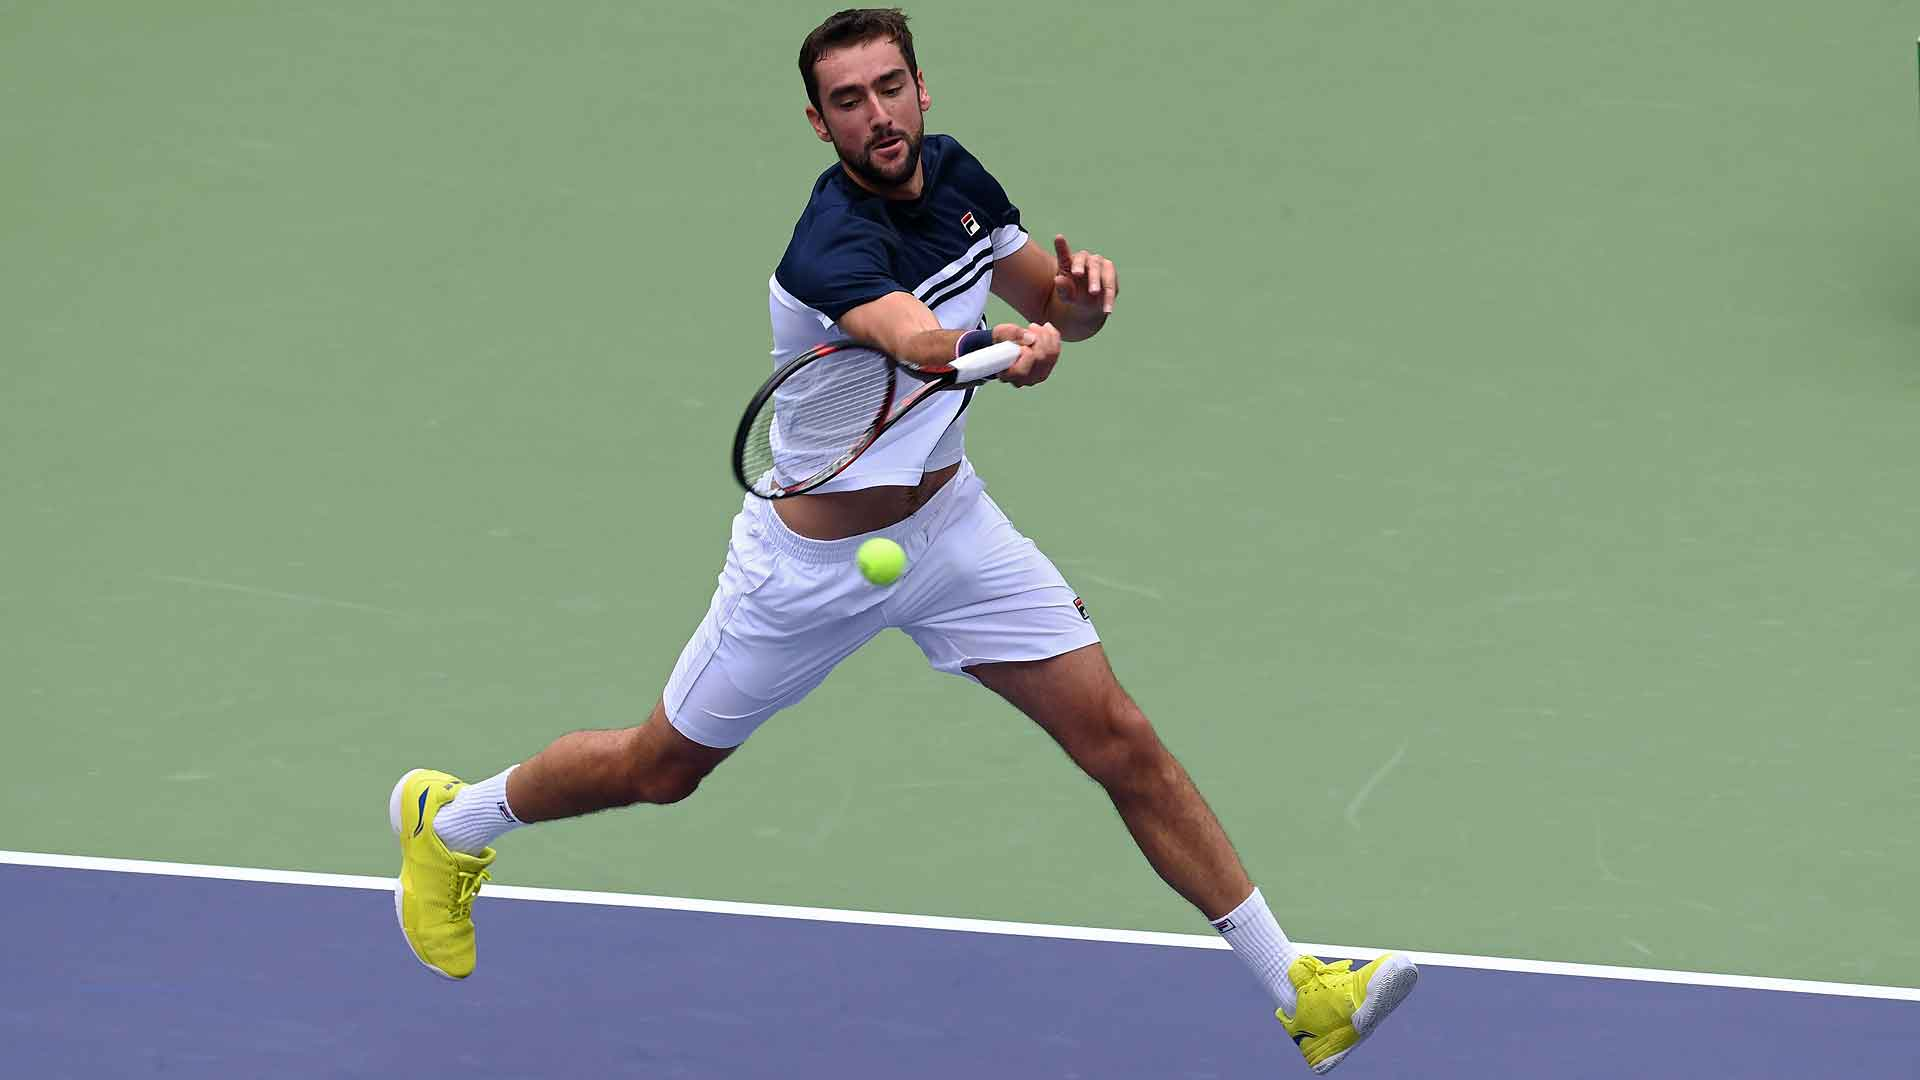 marin cilic overview atp world tour tennis